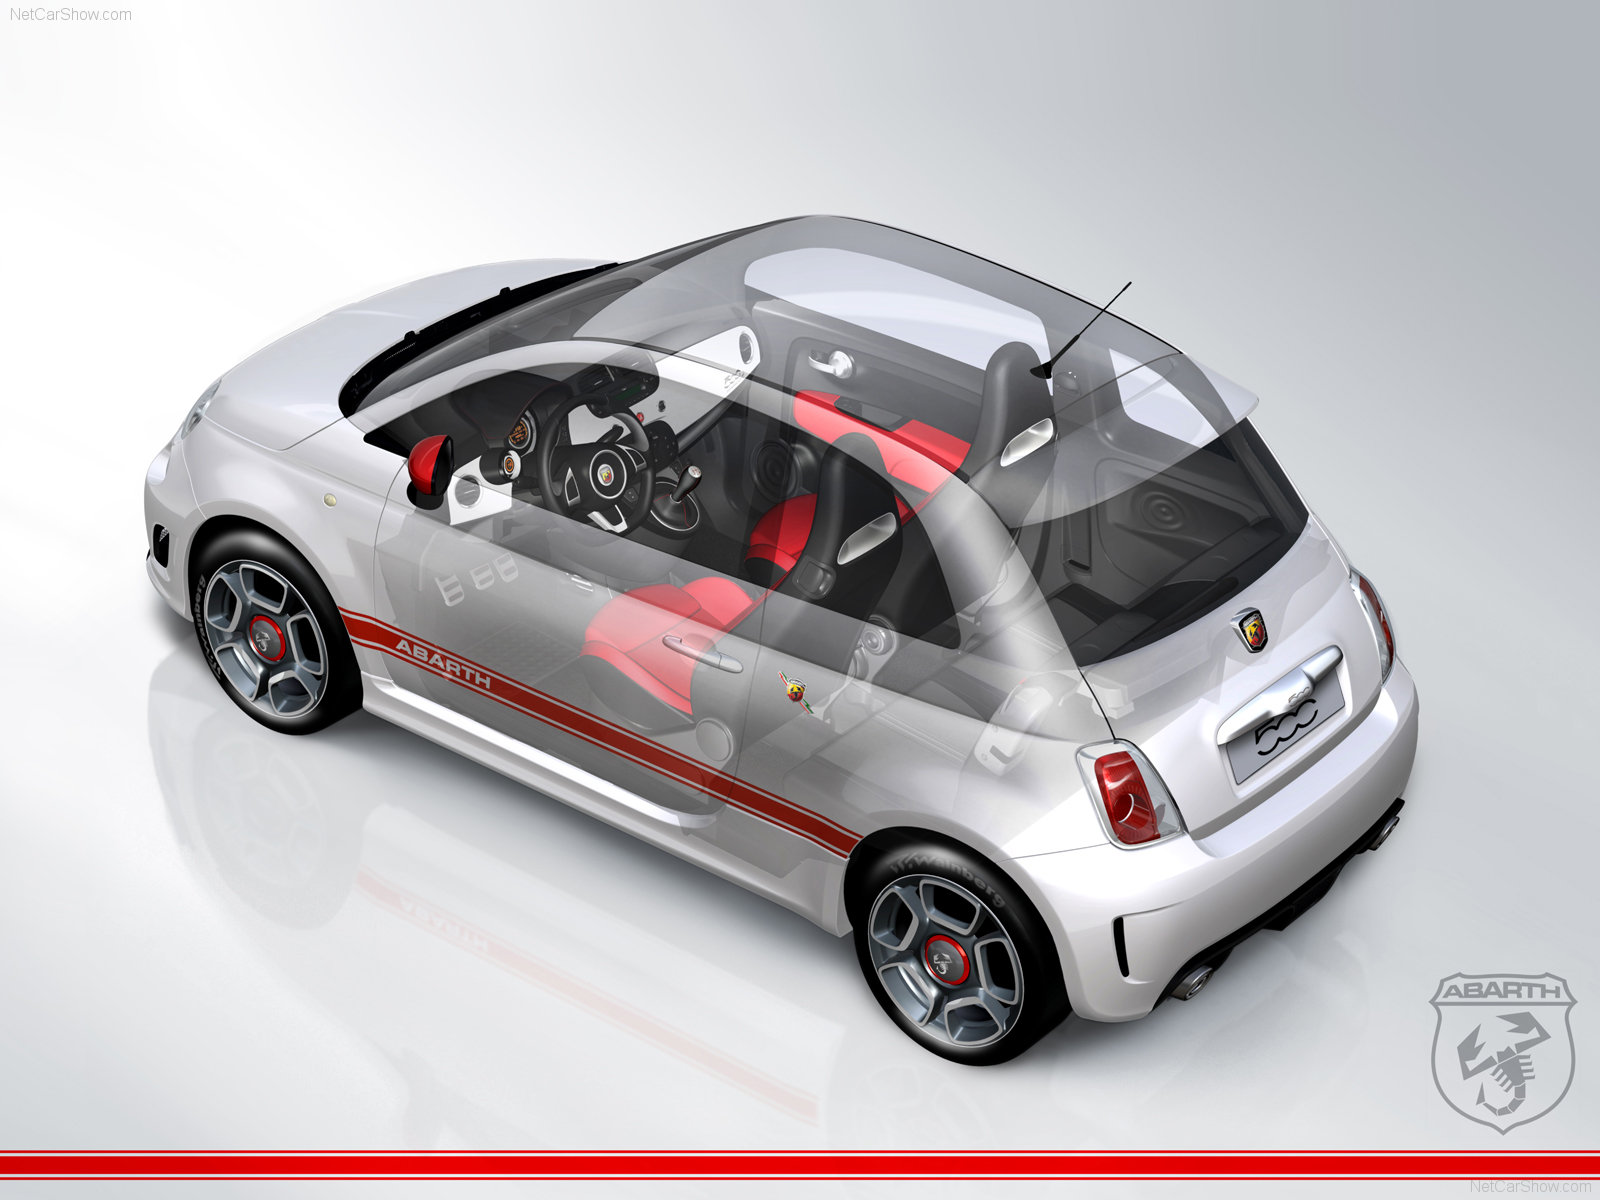 Abarth Fiat 500 photo 52516